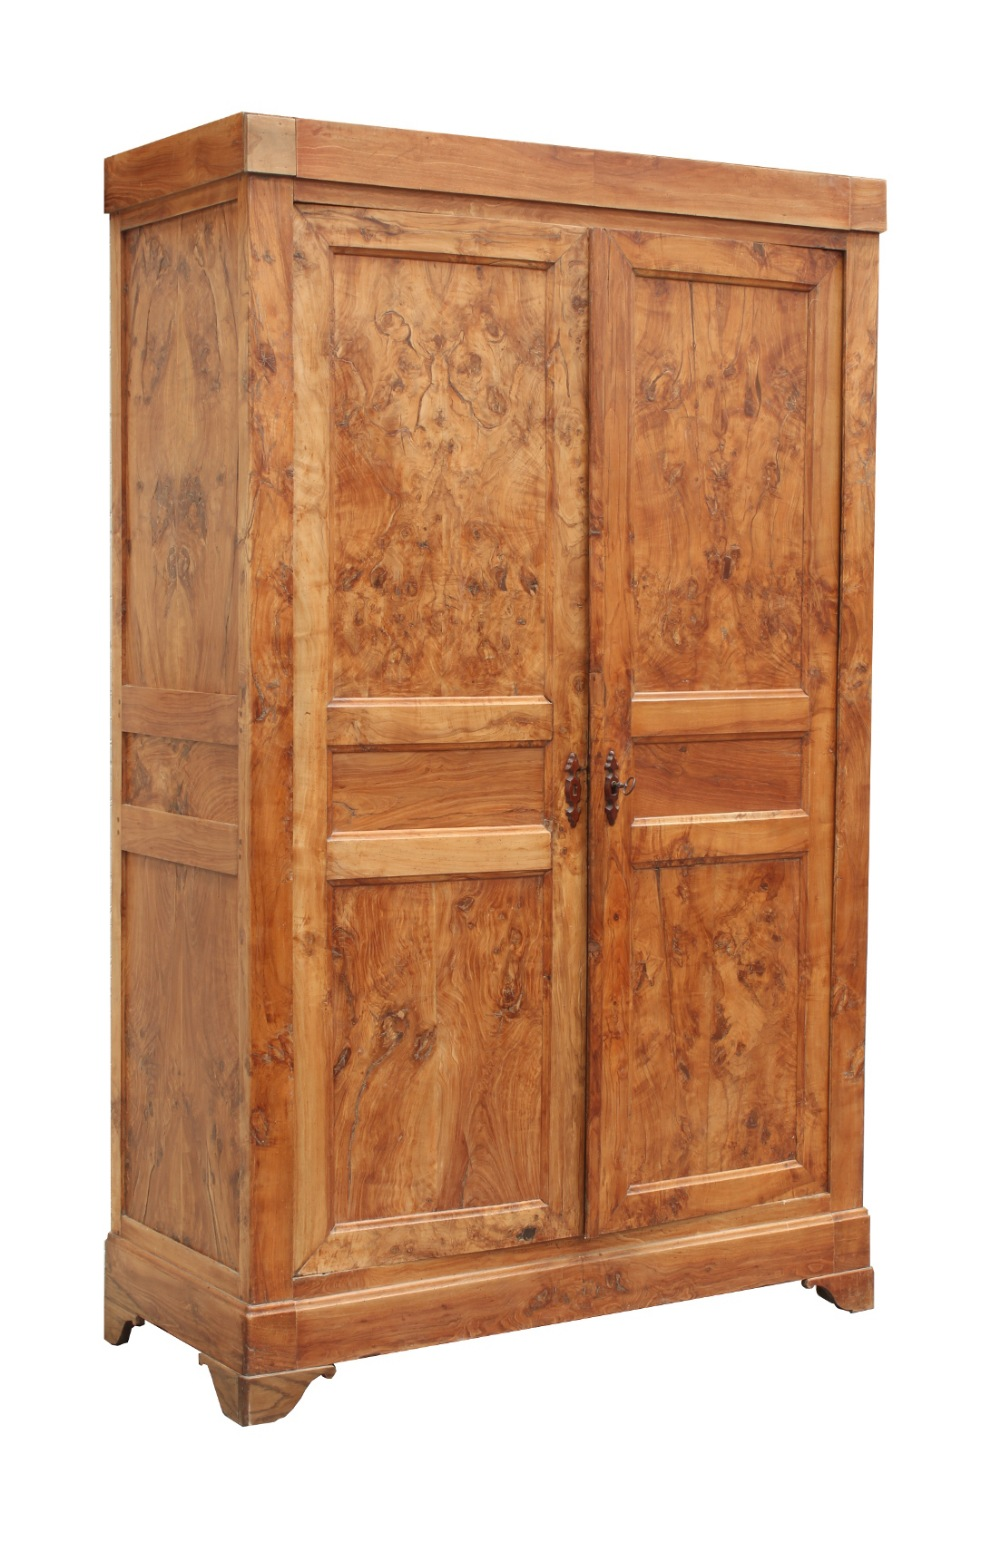 Property of a gentleman - an 18th century French chestnut & burr chestnut armoire, restorations to